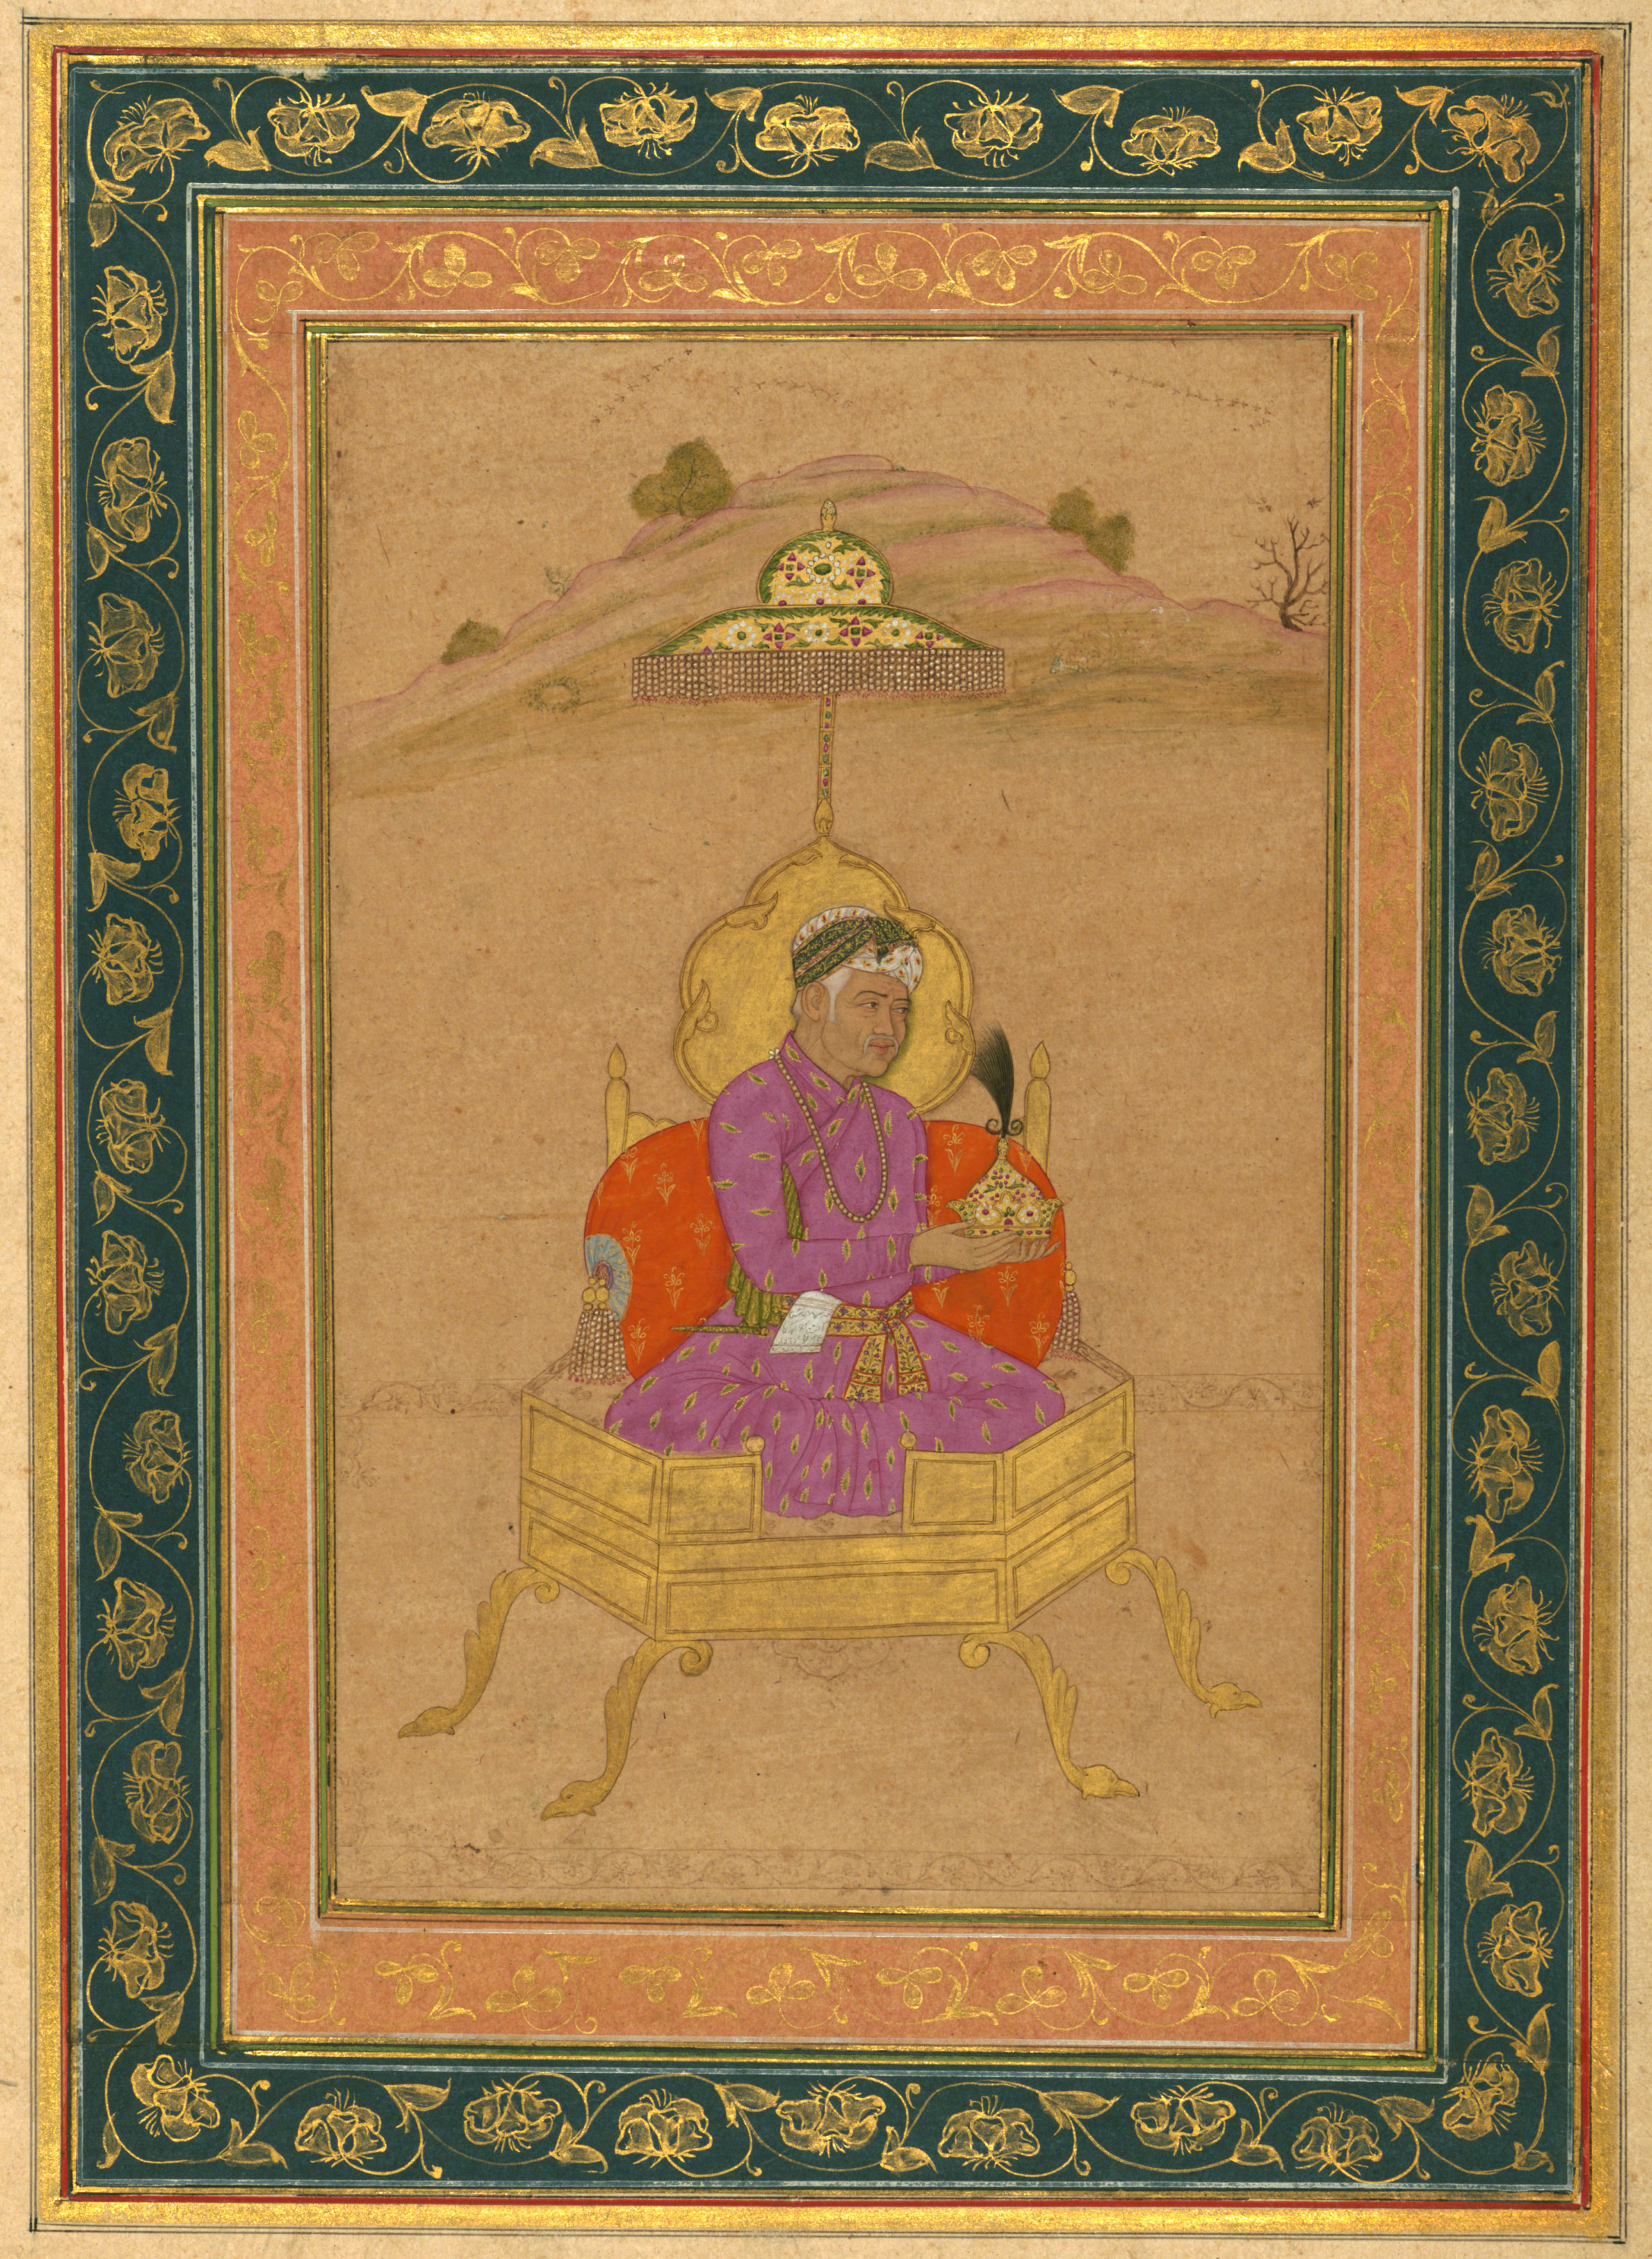 the reign of the mughal monarchs in 16th and 17th century india Start studying art history 130 final learn india, ca 16th century pahari school (rajput), krishna and radha in a pavilion, india, 17th century samanid.